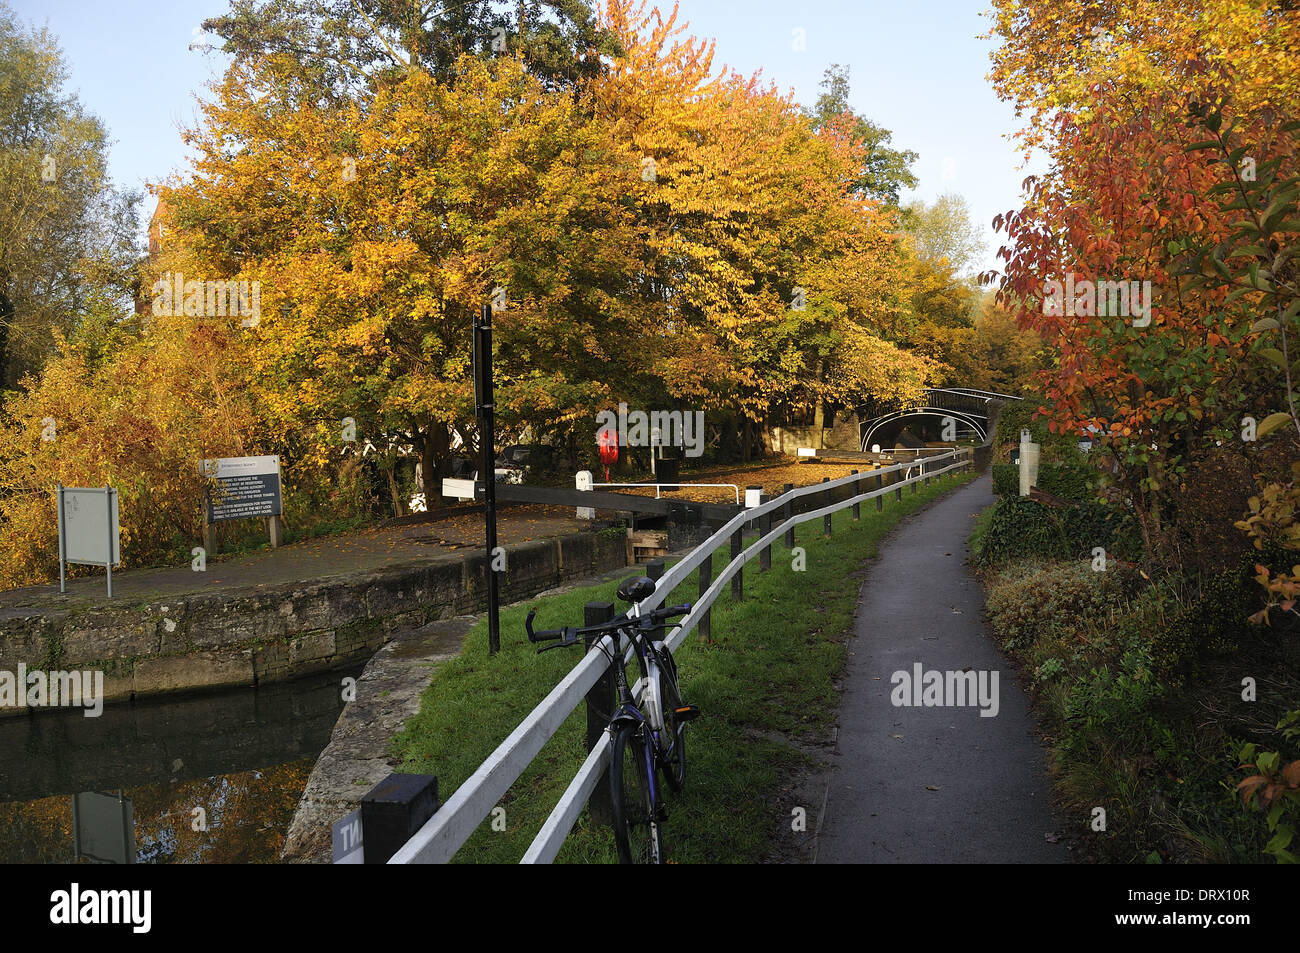 Autumn trees at Oxford Canal - Stock Image